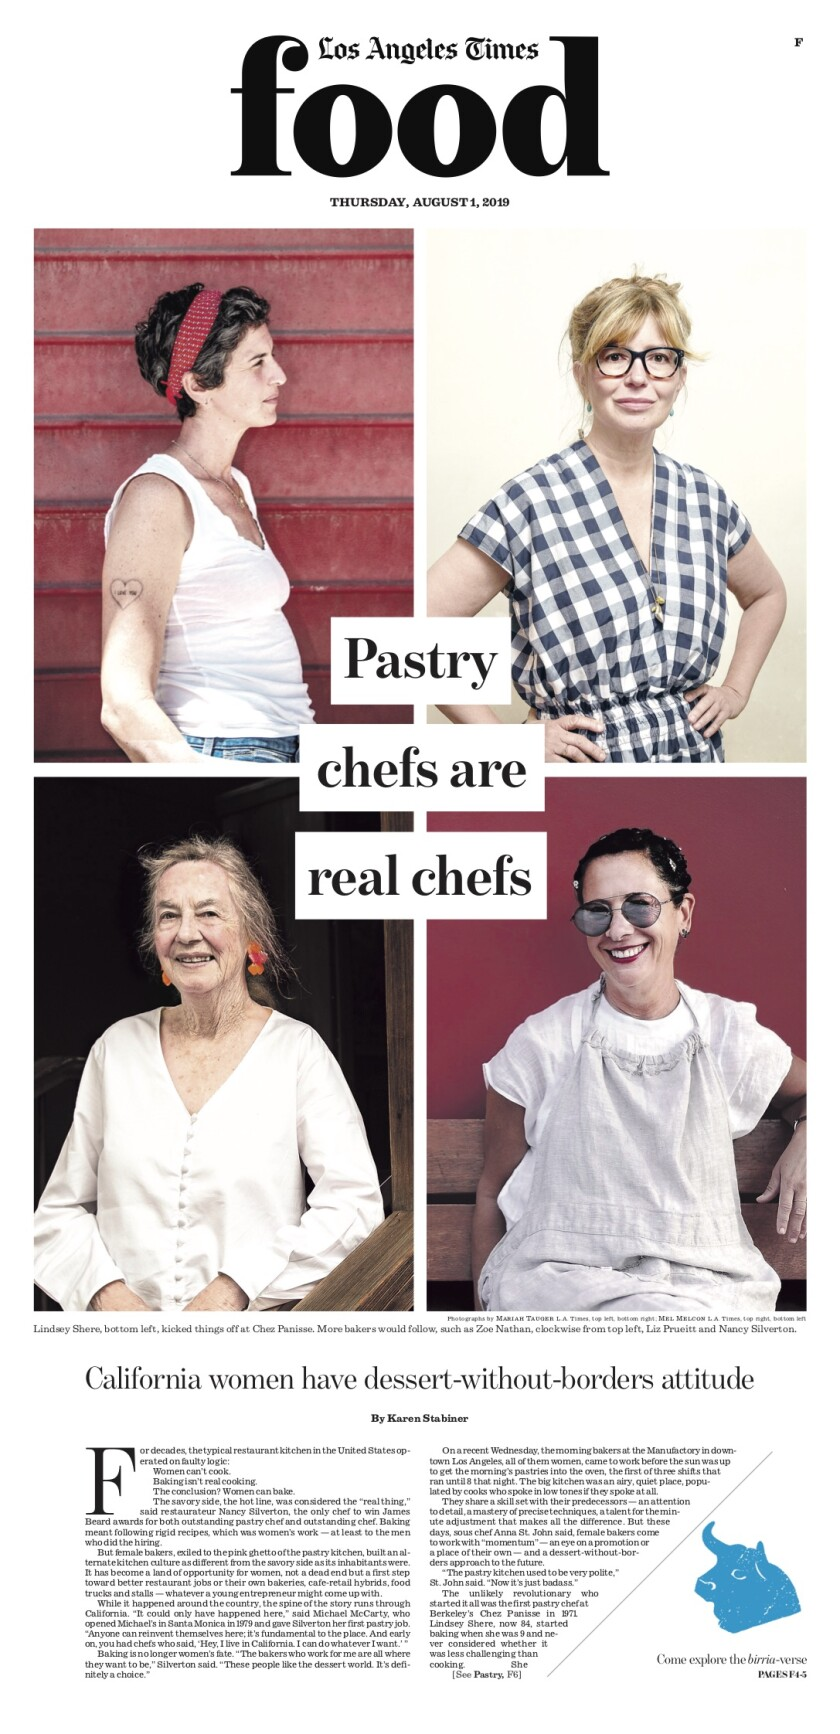 Los Angeles Times Food cover, August 1, 2019